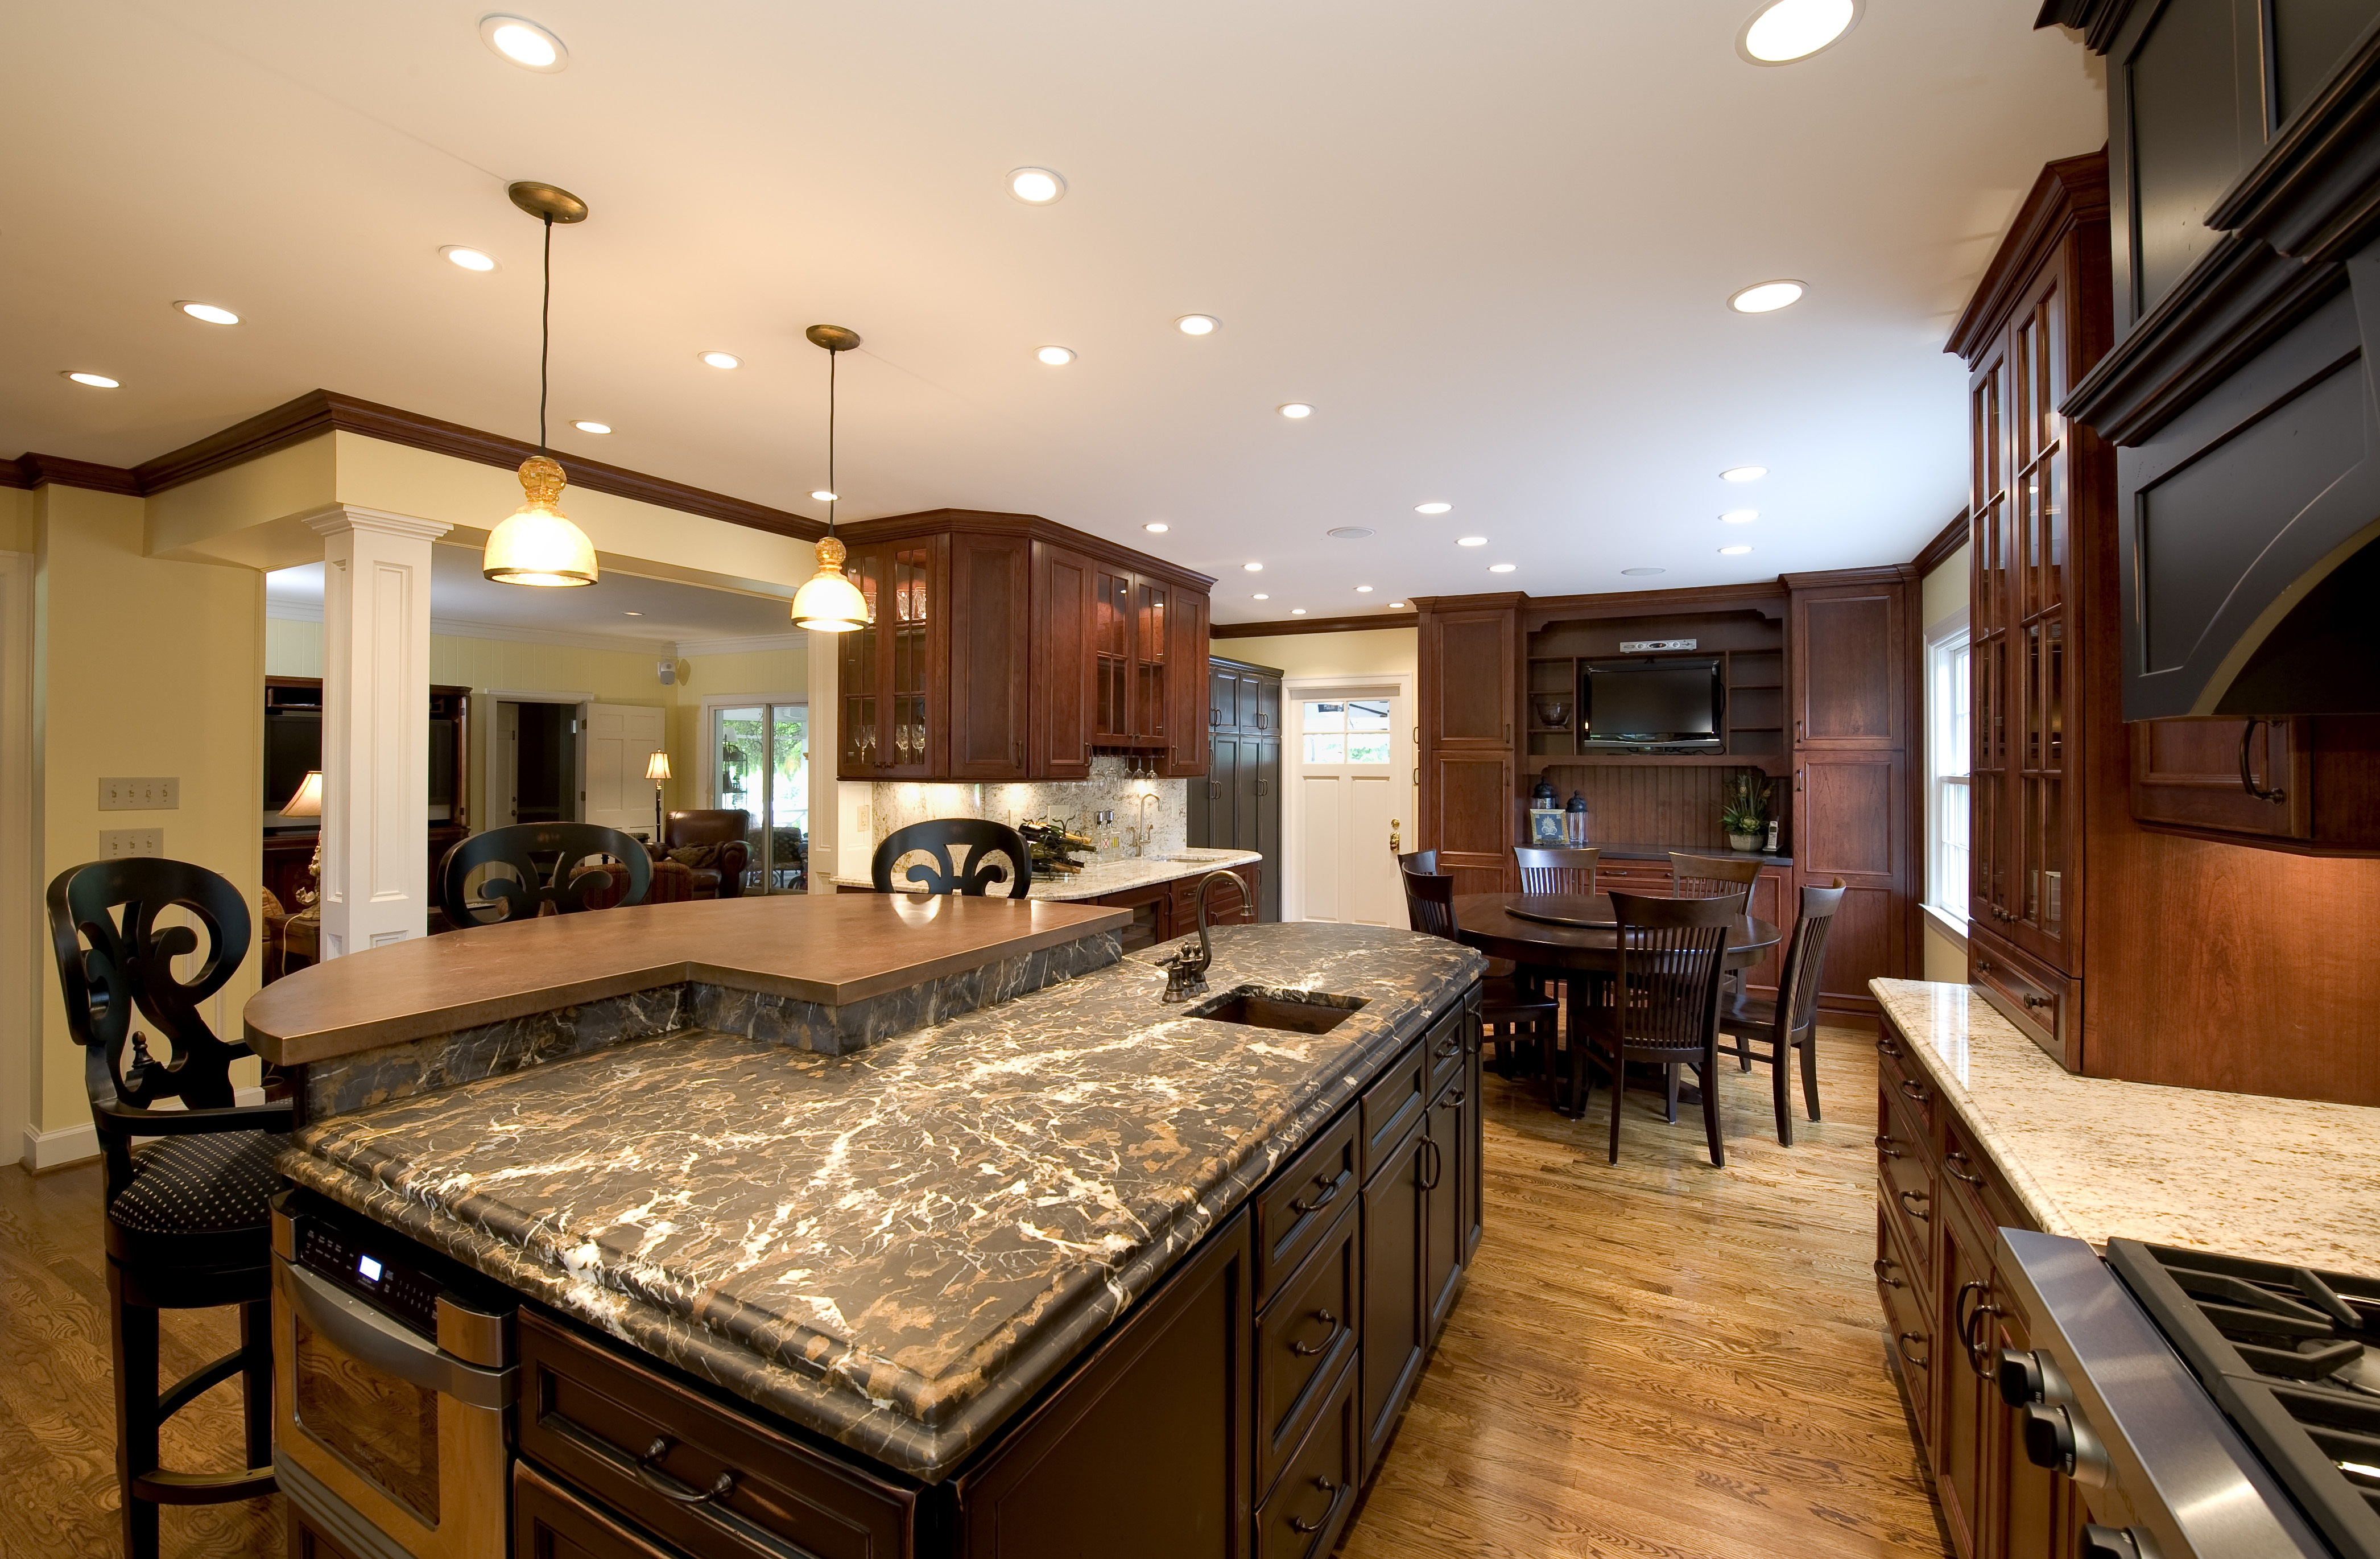 Kitchen cabinets by back construction in lexington kentucky for Kitchen cabinets quality levels